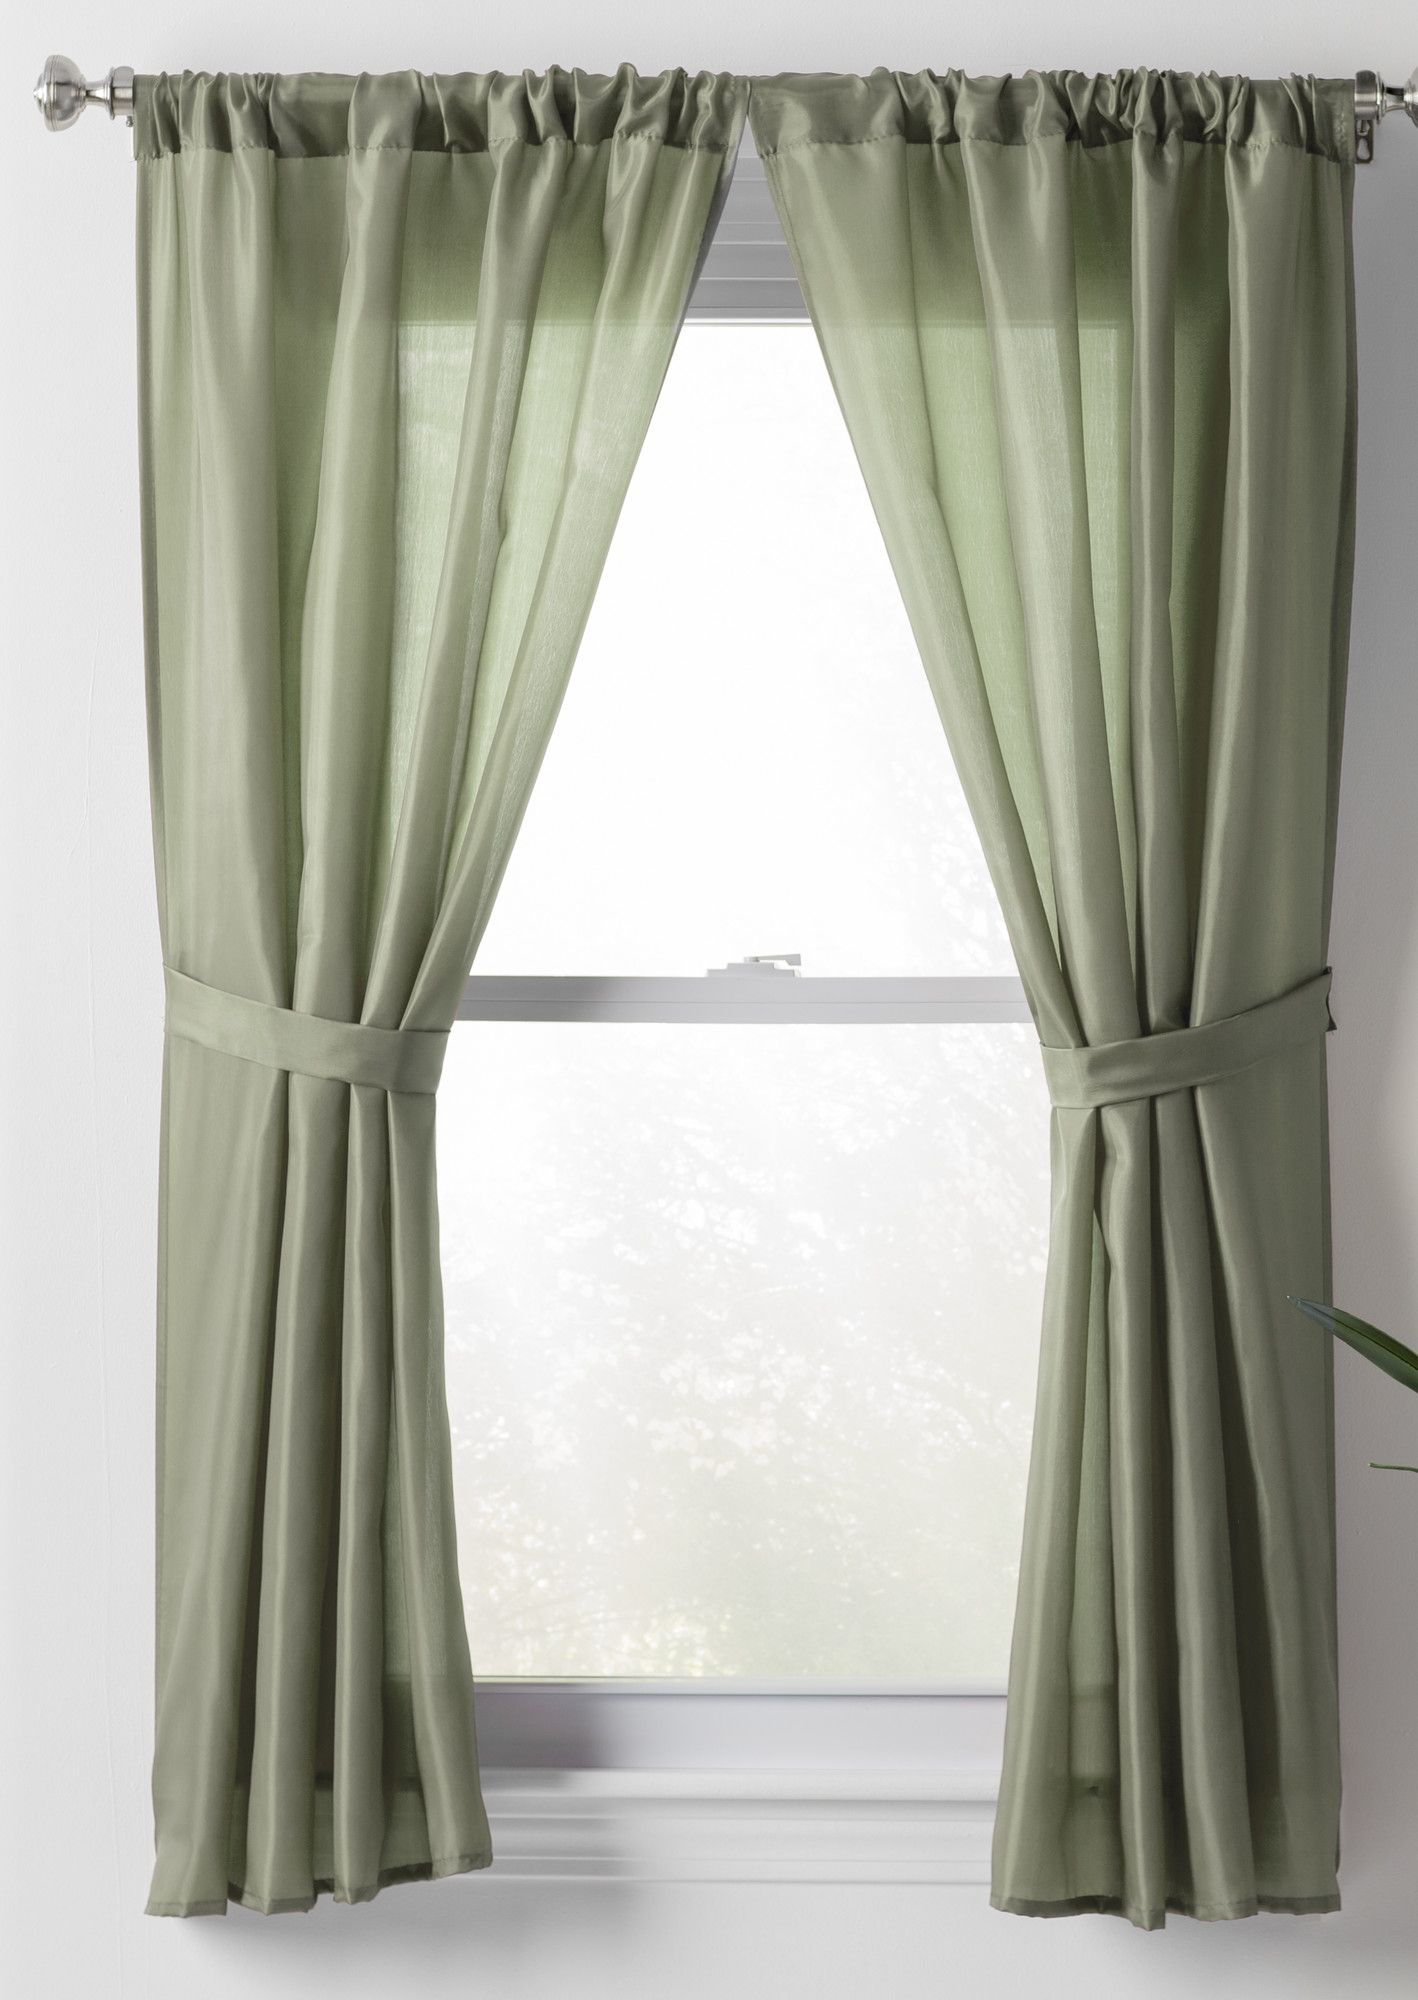 Kitchen Curtains Littlewoods Basics Solid Sheer Rod Pocket Bathroom Curtain Panels In 2019